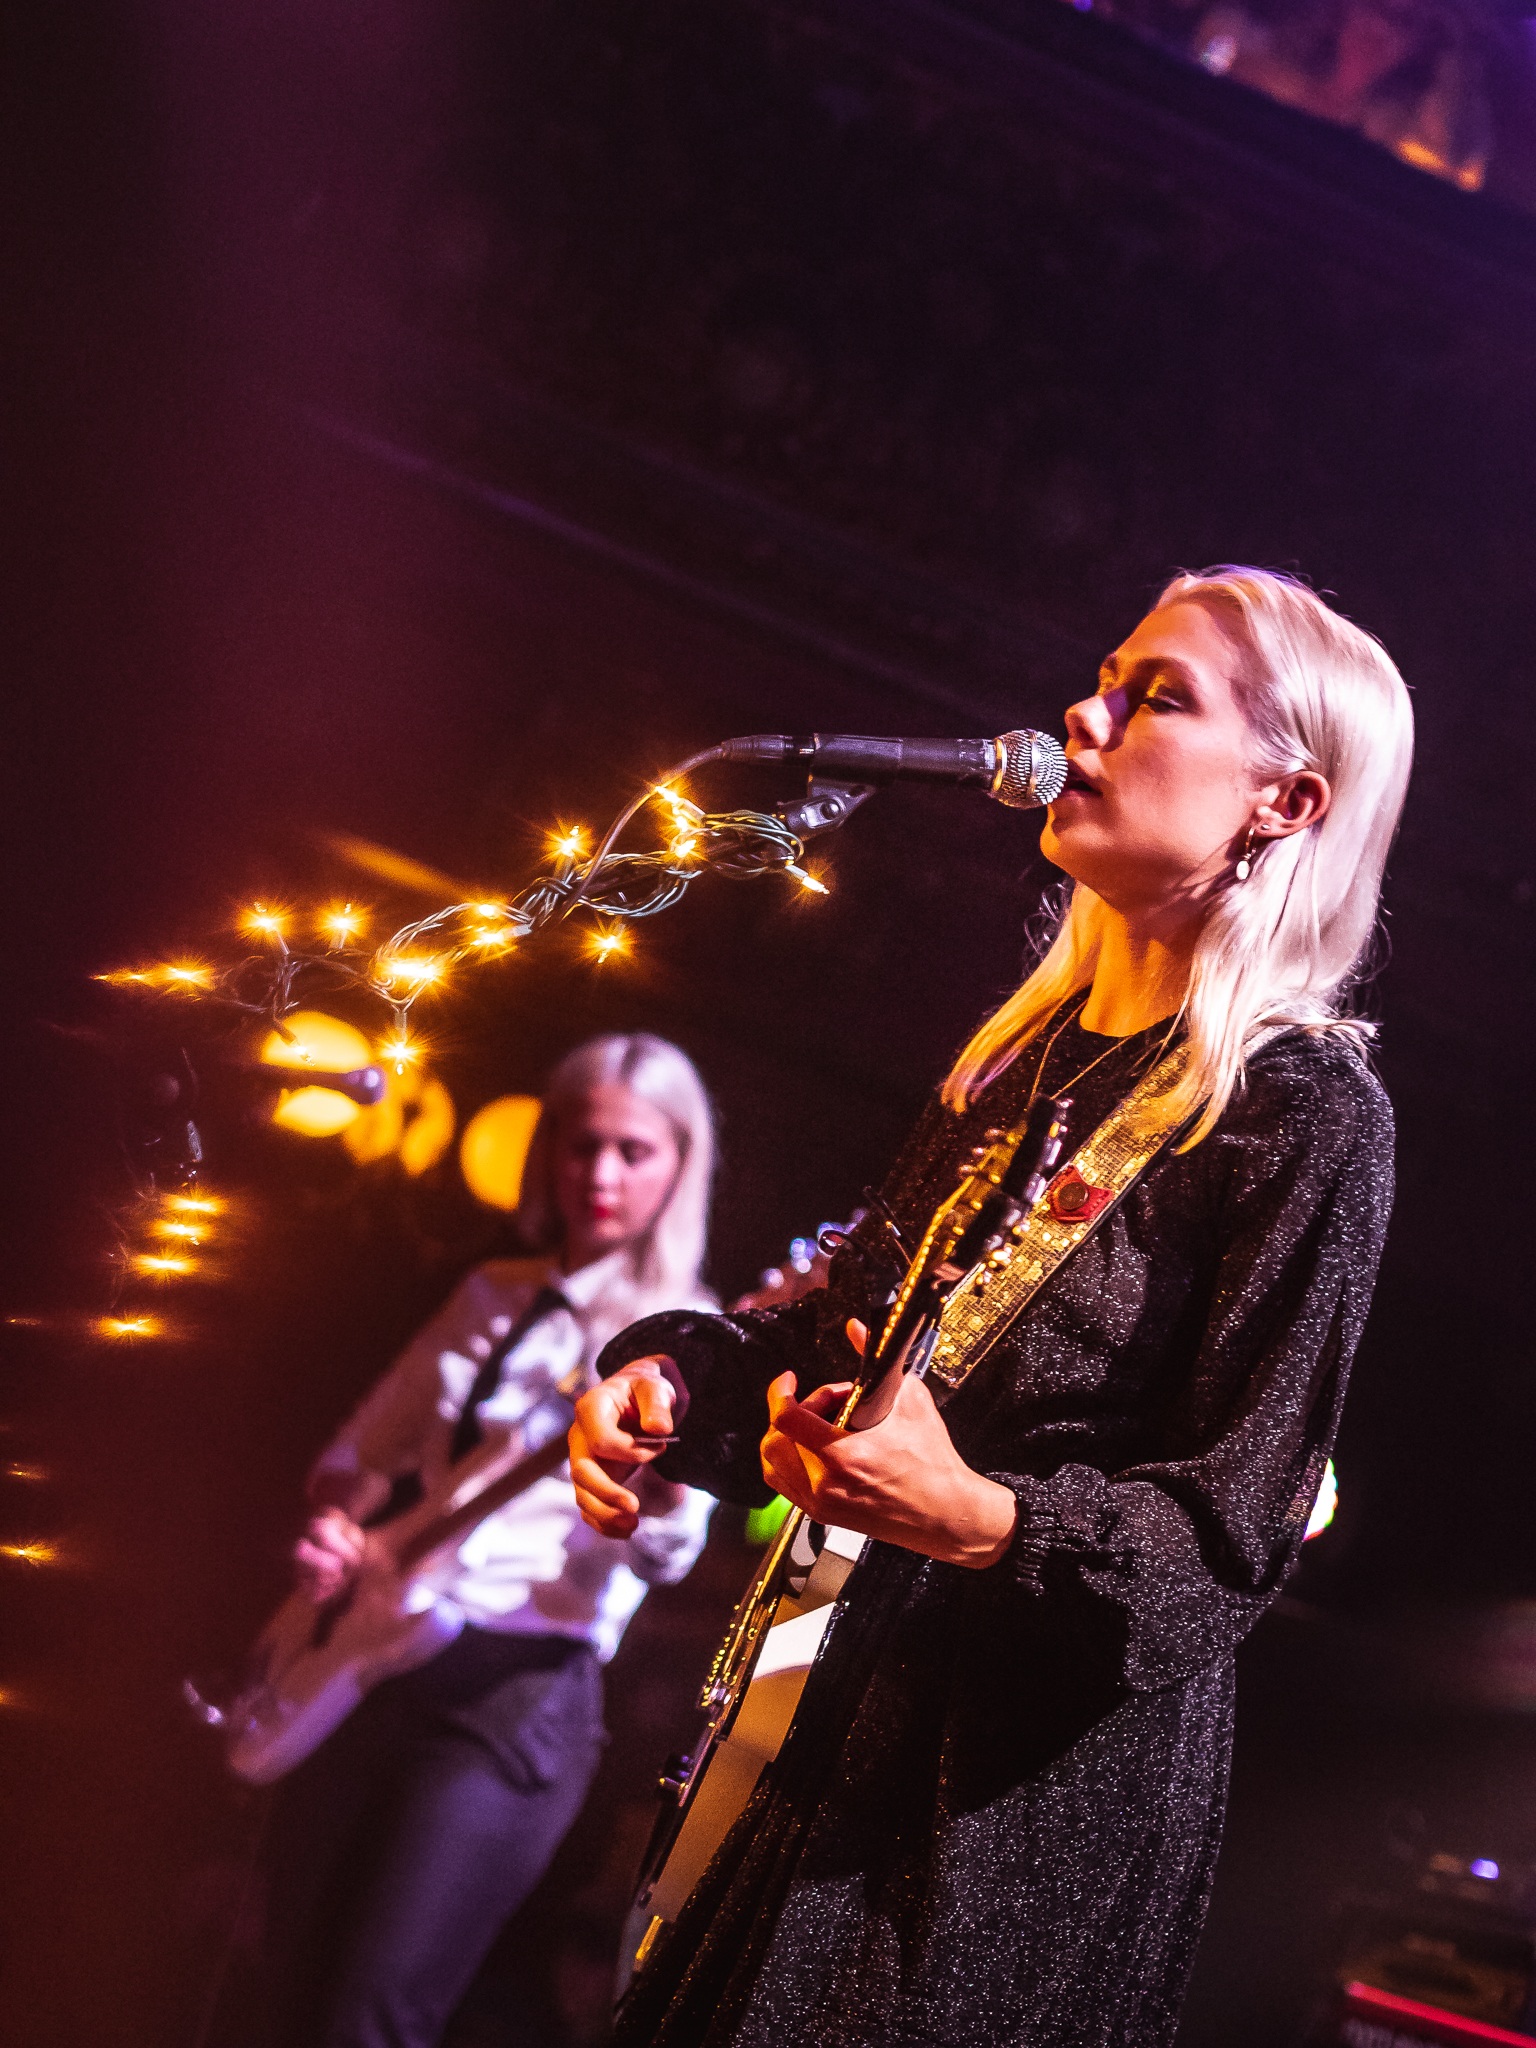 Phoebe Bridgers @ The Great American Music Hall, San Francisco, CA